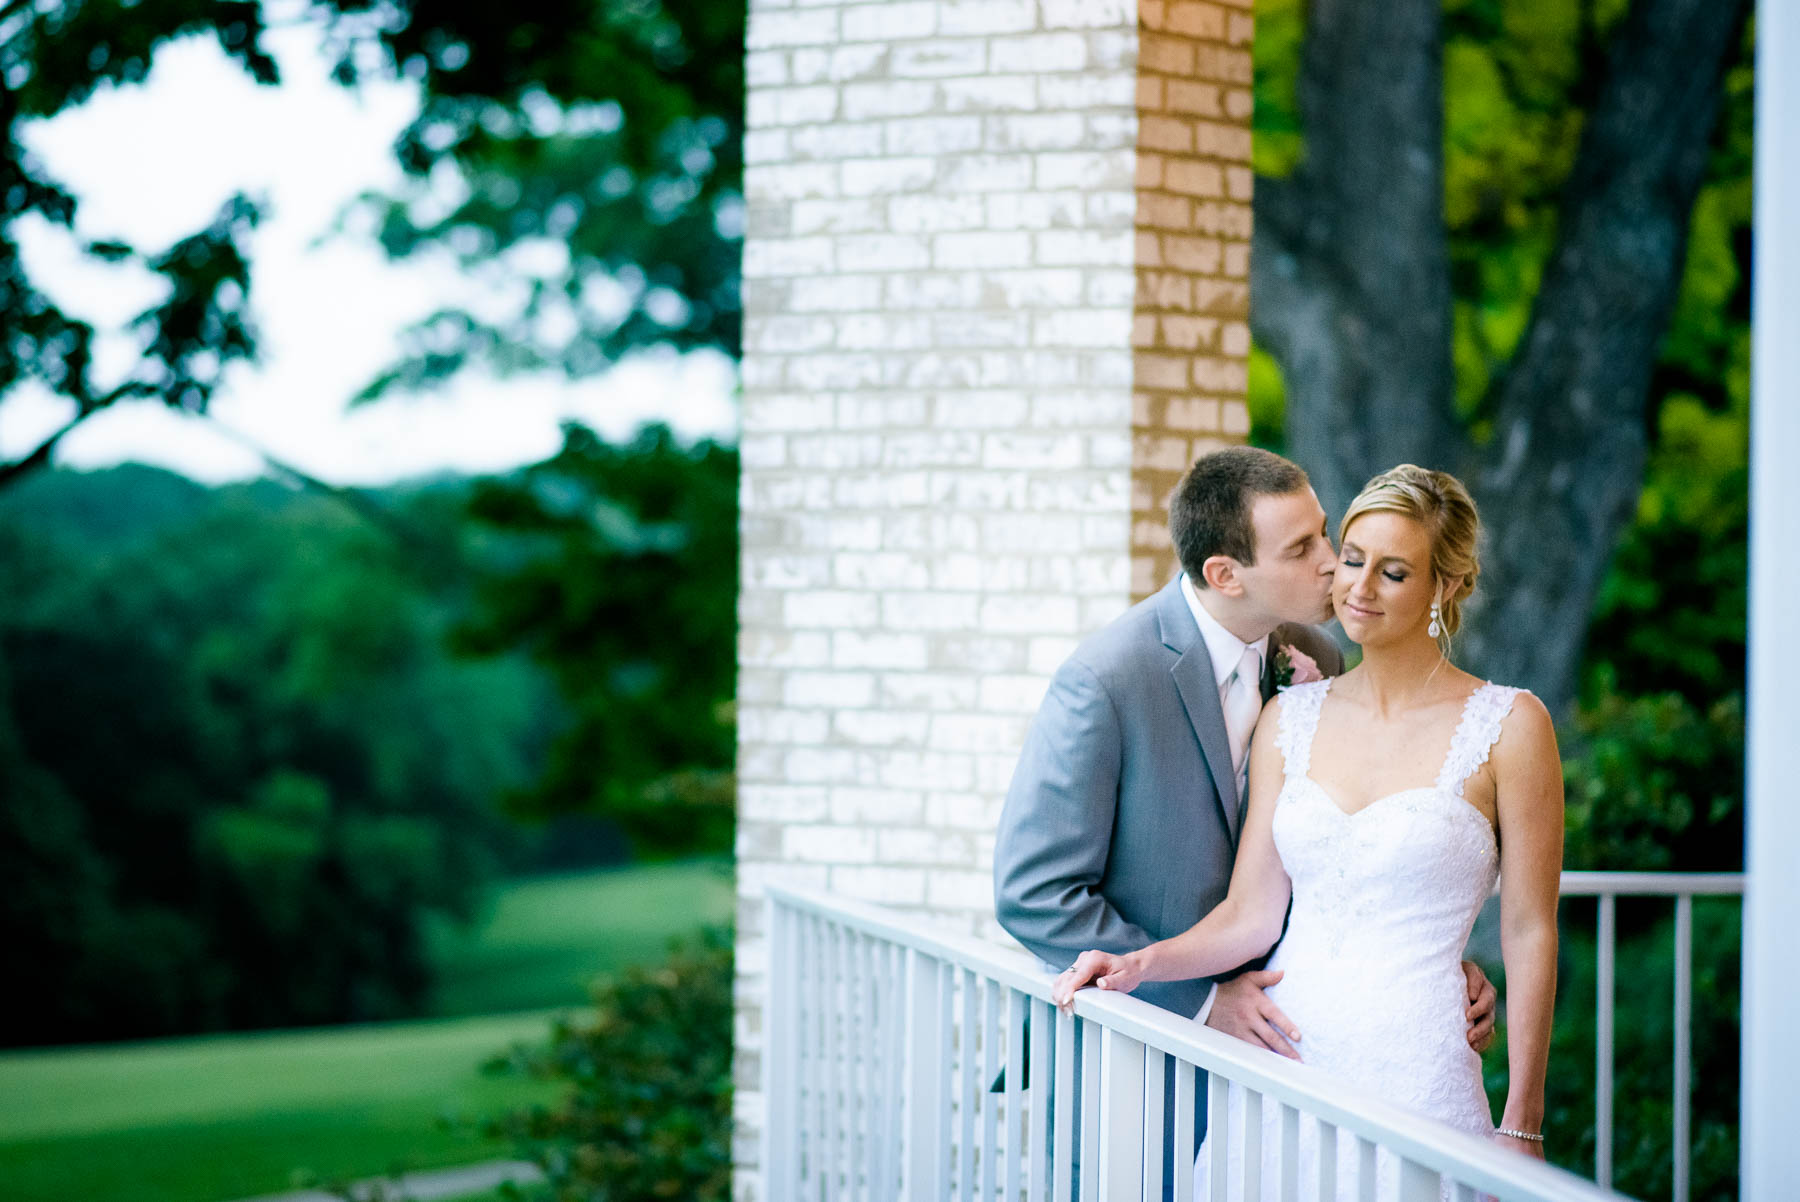 Portrait at dusk of the bride and groom during their St. Charles Country Club wedding.